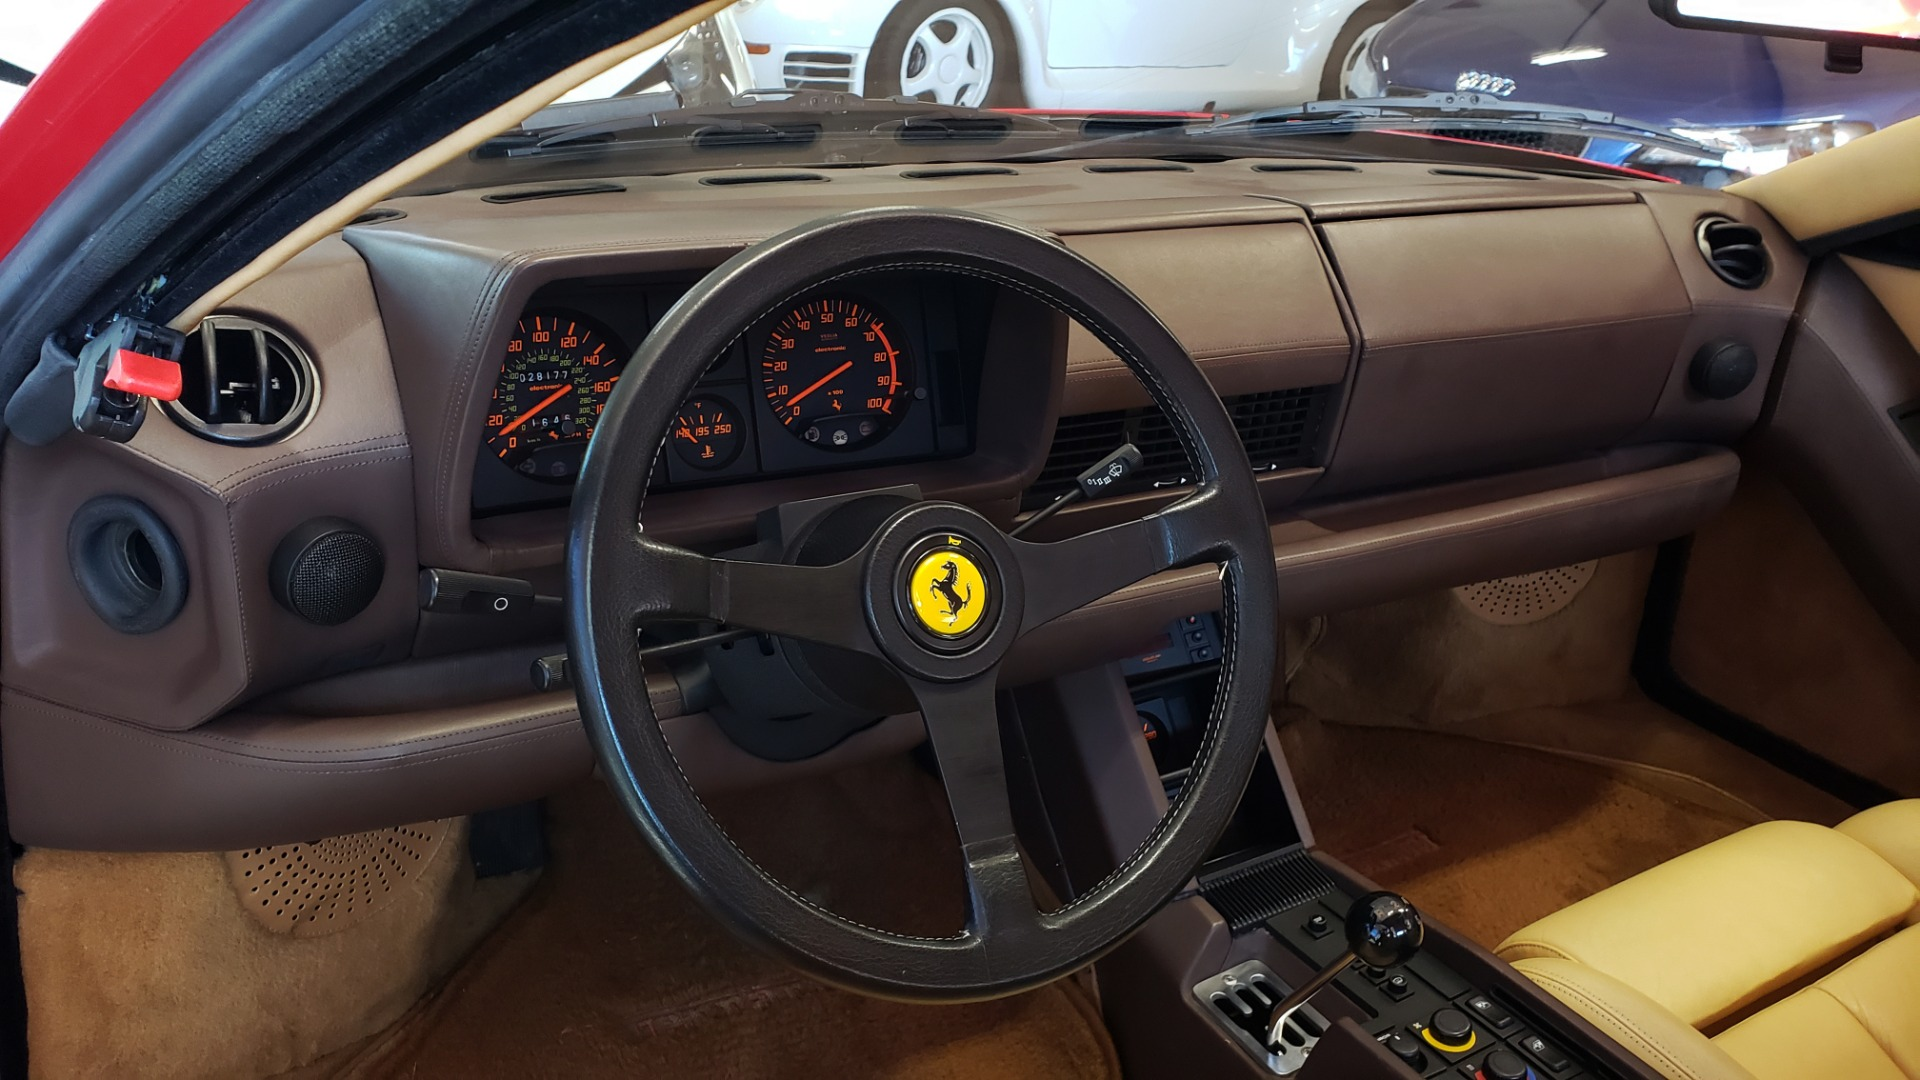 Used 1988 Ferrari TESTAROSSA COUPE / 4.9L FLAT-12 / 5-SPEED MANUAL / LOW MILES SUPER CLEAN for sale $128,999 at Formula Imports in Charlotte NC 28227 47